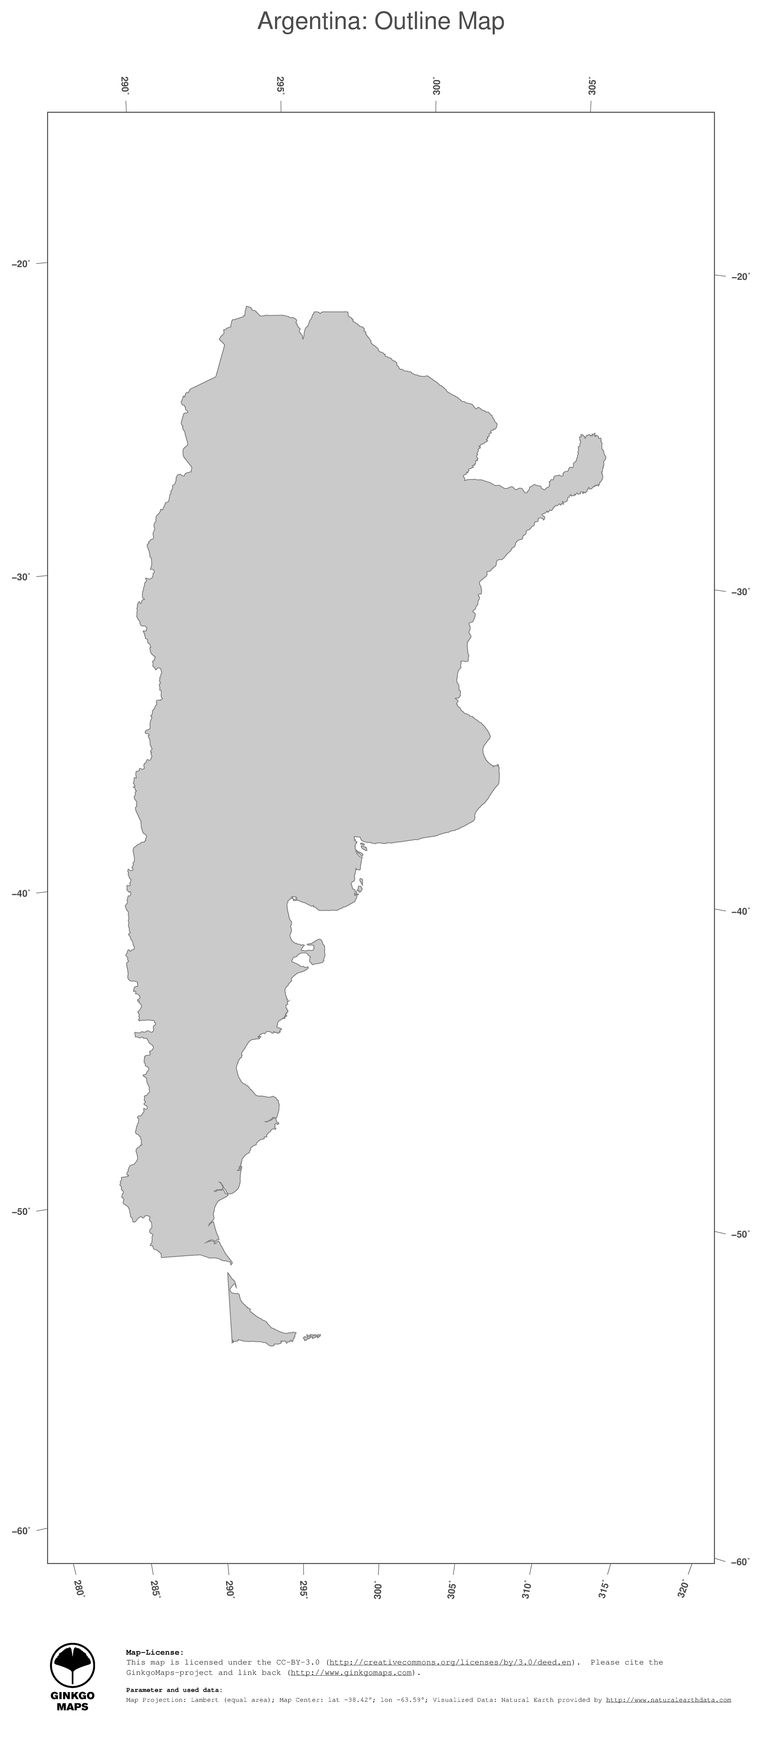 Map Argentina GinkgoMaps Continent South America Region Argentina - Argentina map continent